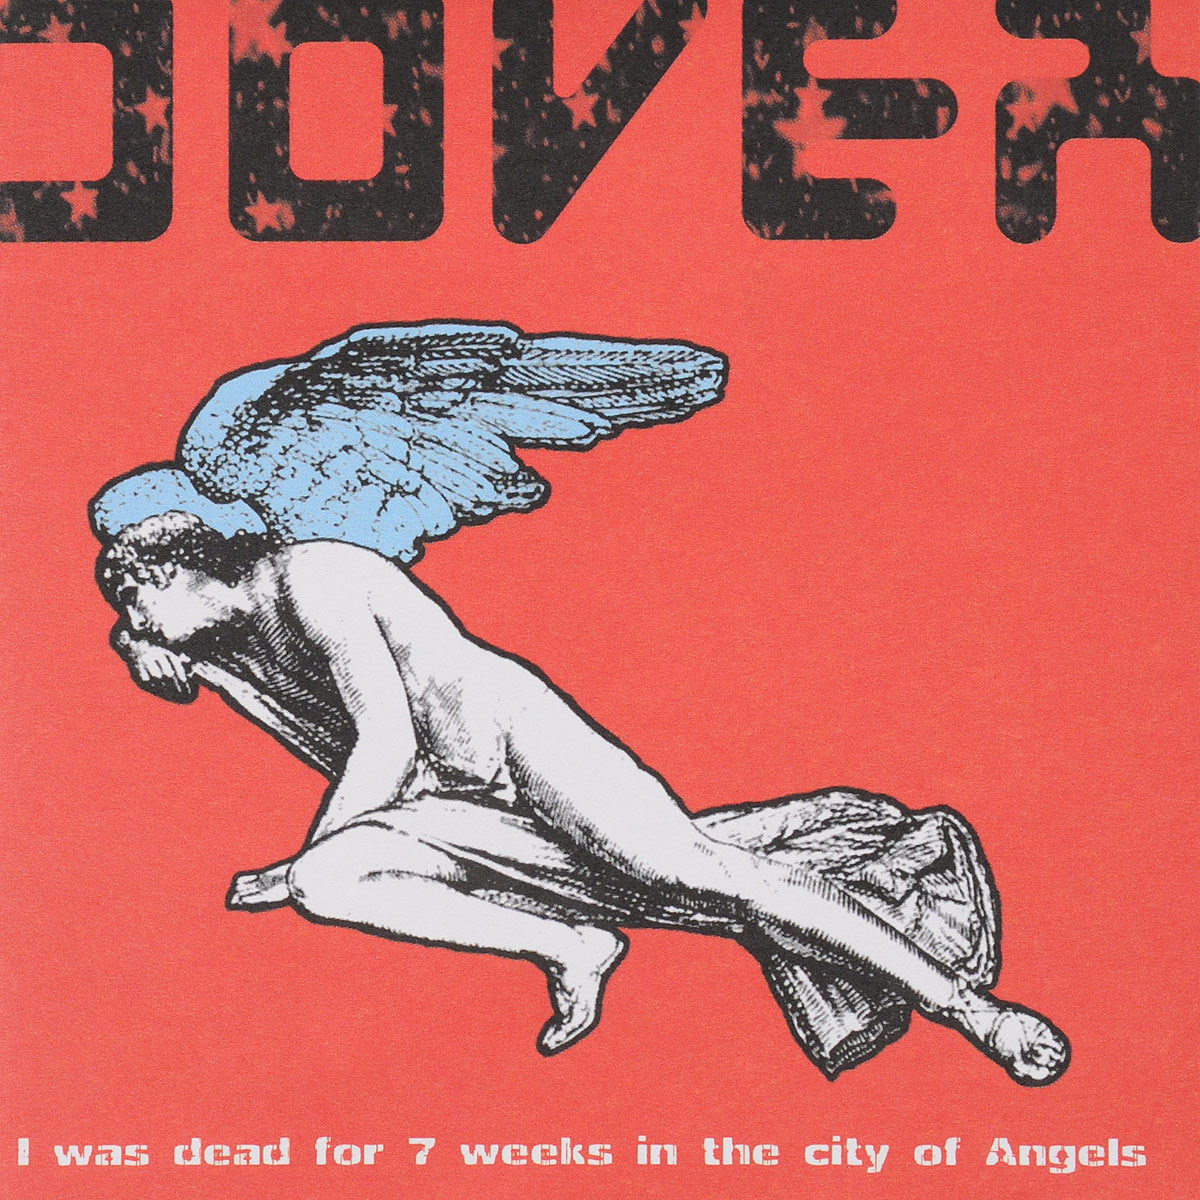 Dover. I Was Dead For 7 Weeks In The City Of Angels